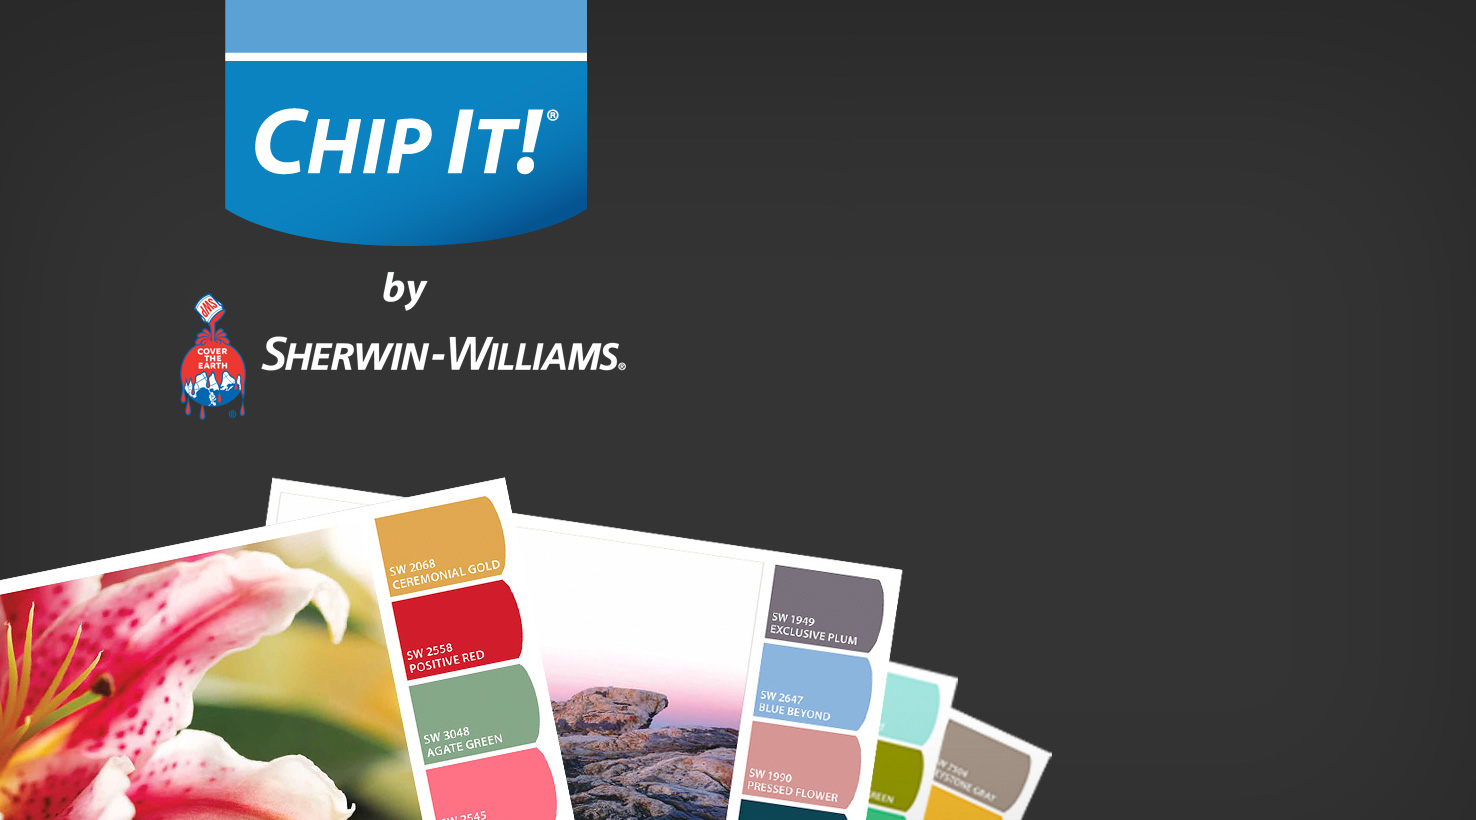 Chip It by Sherwin-Williams